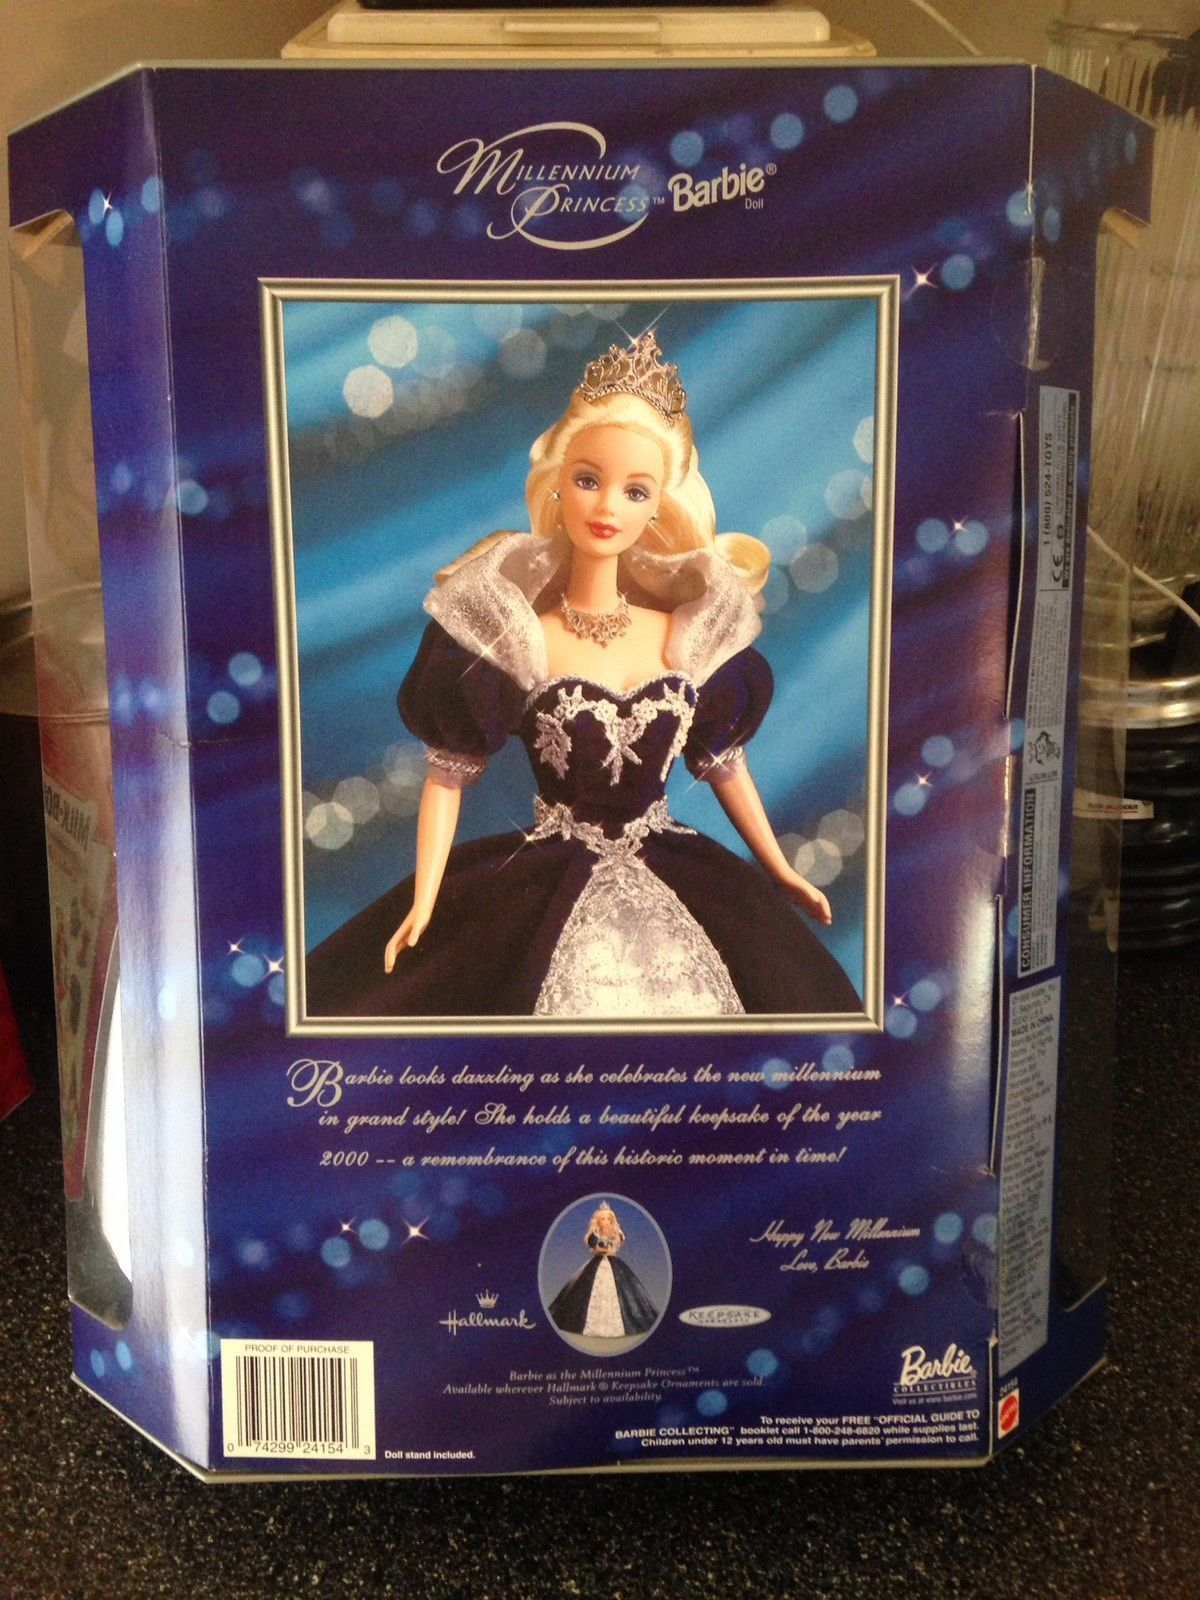 Happy New Year 2000 Millennium Princess Barbie Doll Keepsake Edition Sealed Rare